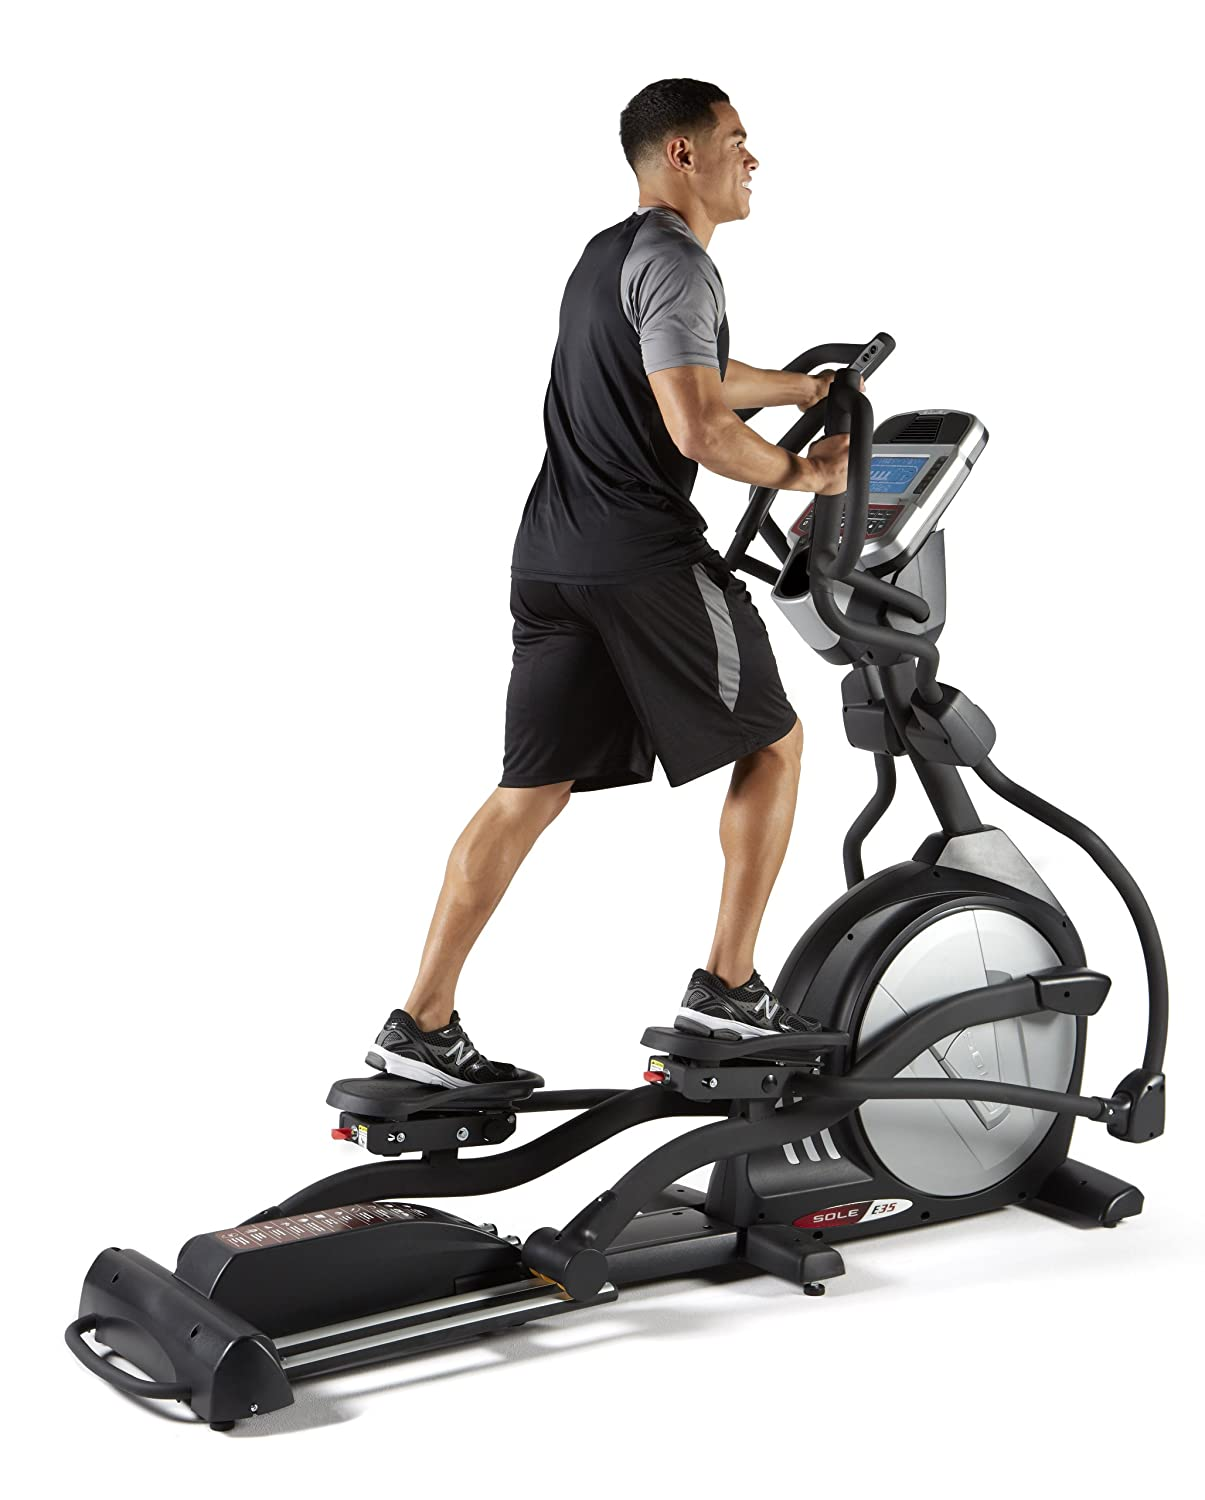 exercise machine that flips you